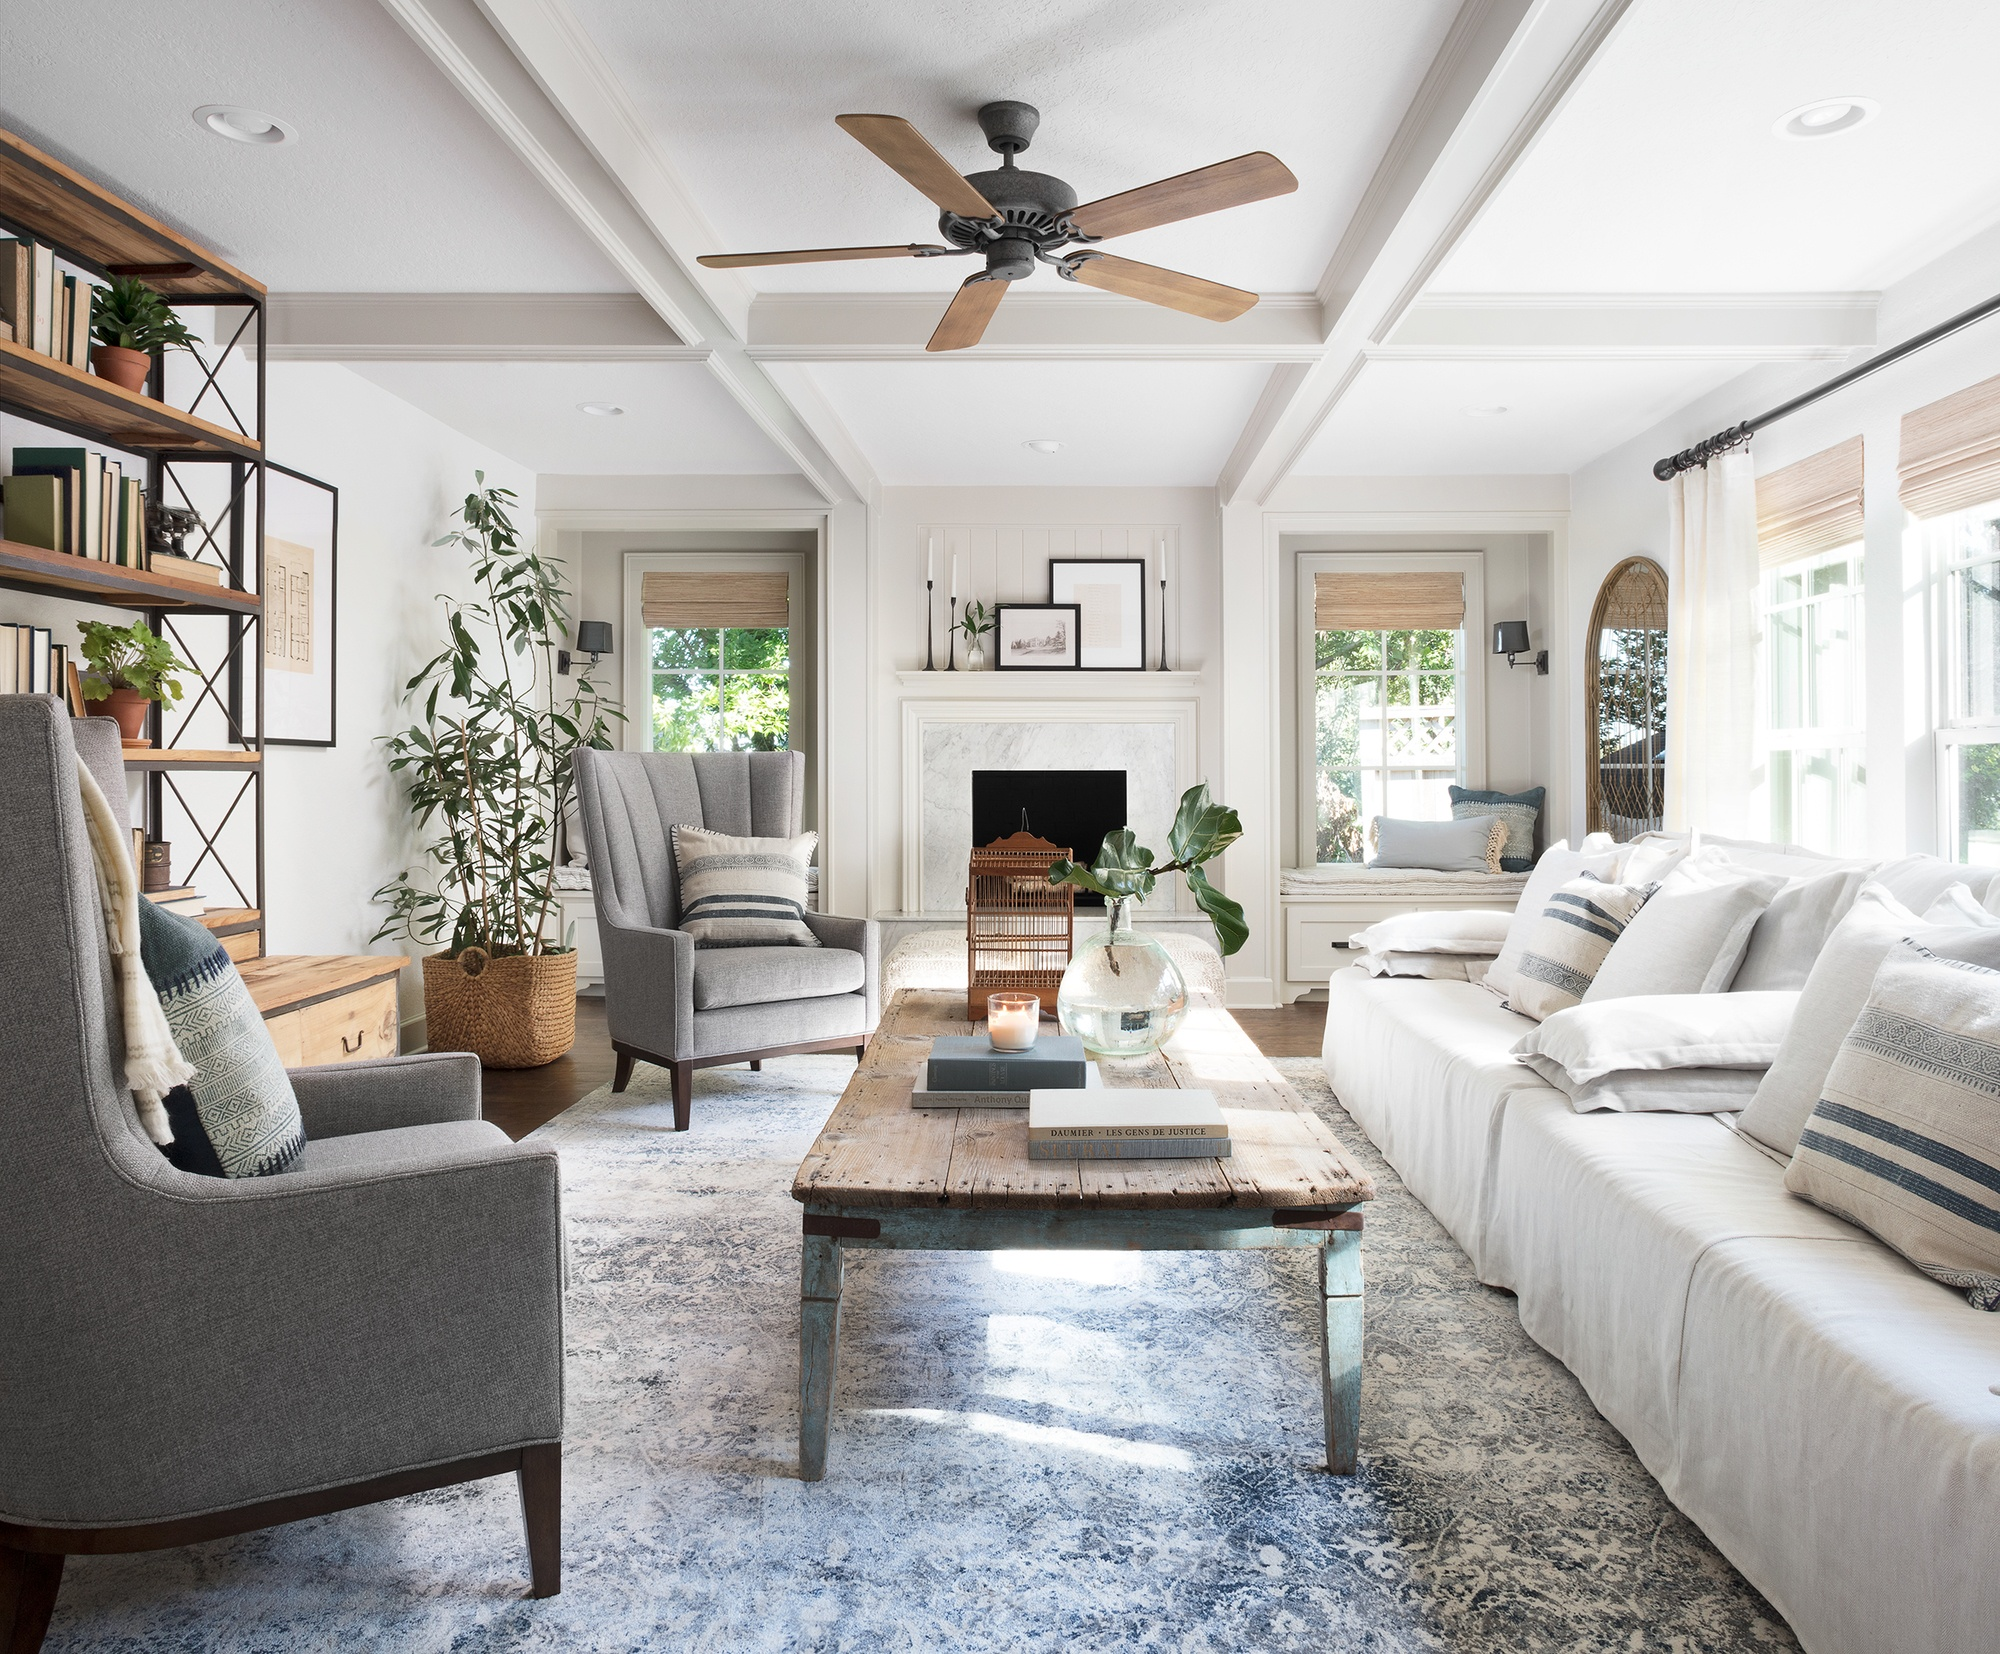 Living room design tips from joanna gaines